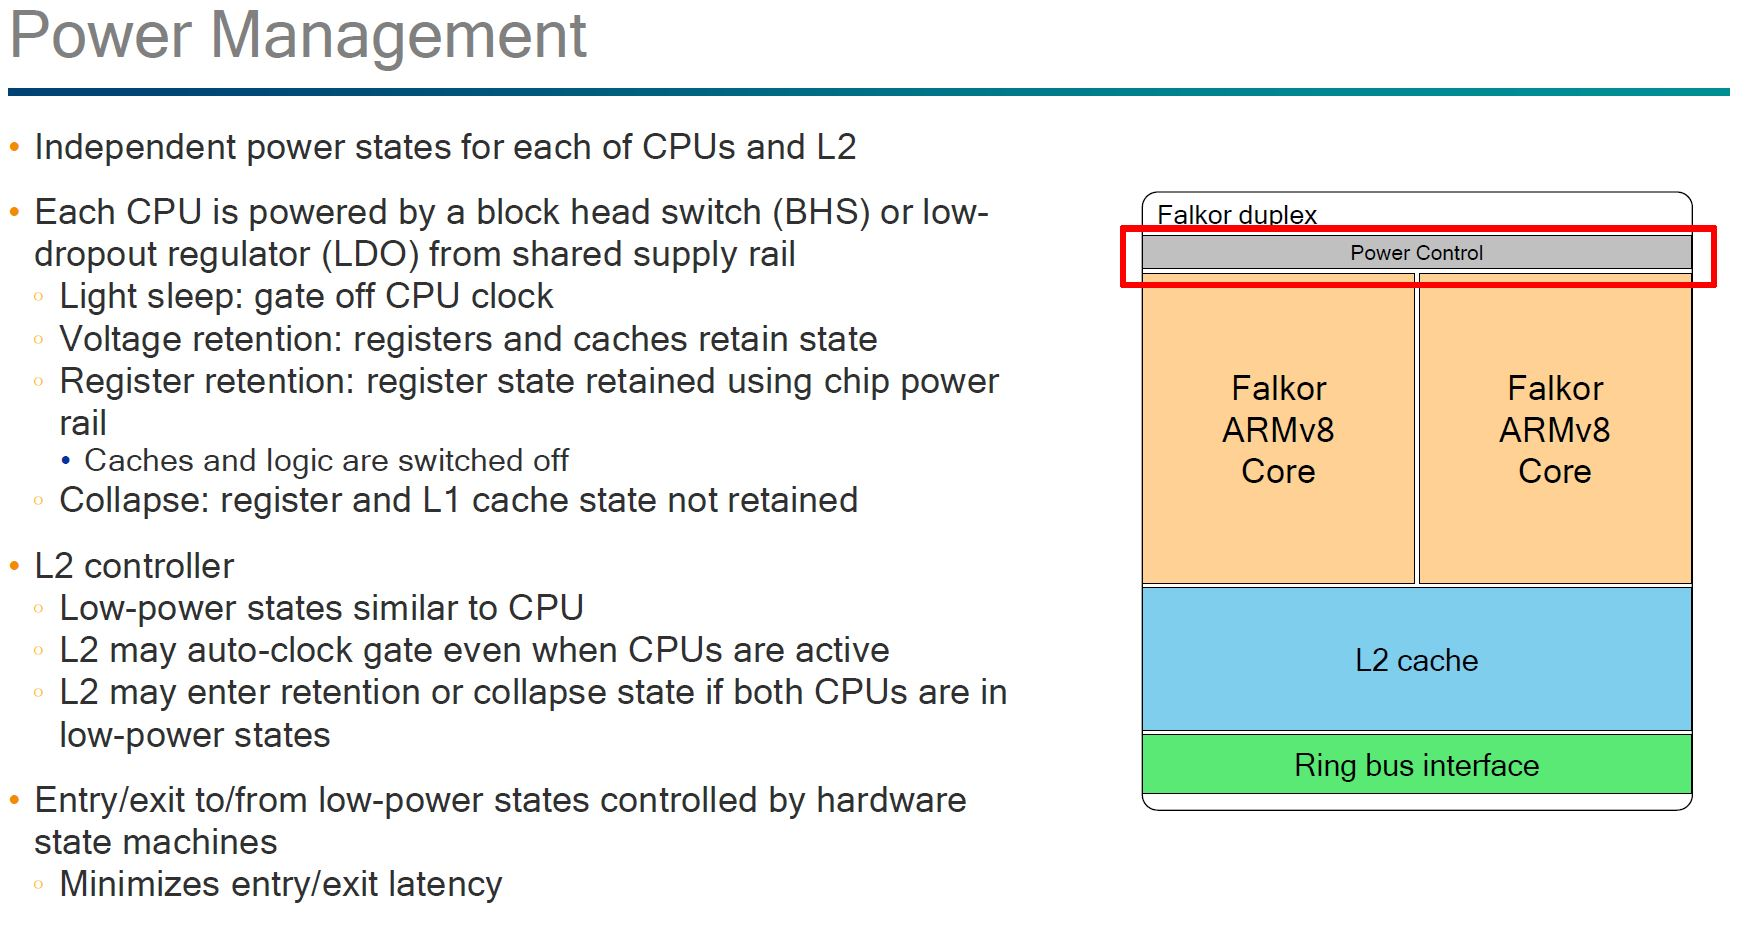 Qualcomm Falkor Power Management